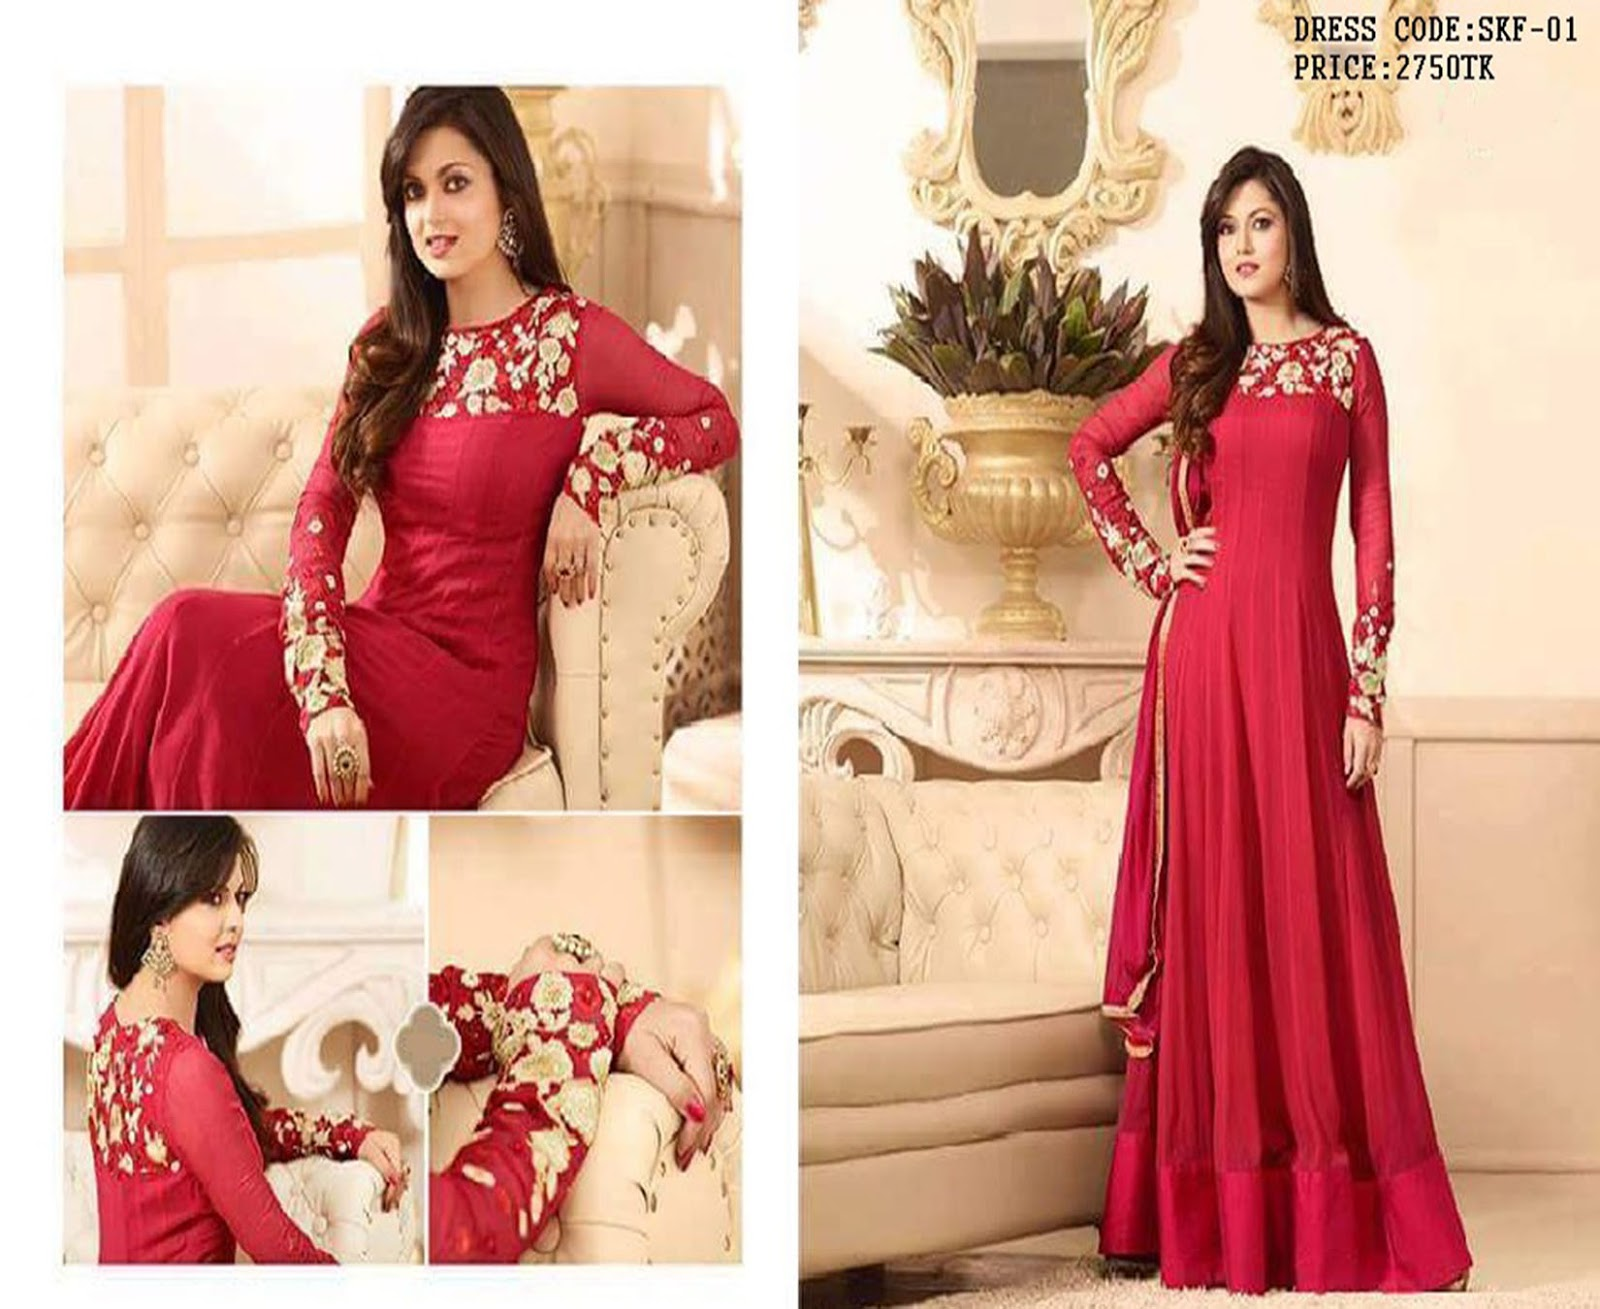 4a6faba03 Indian Latest Floor Touch Gown Dress - Online Shopping Sites In ...